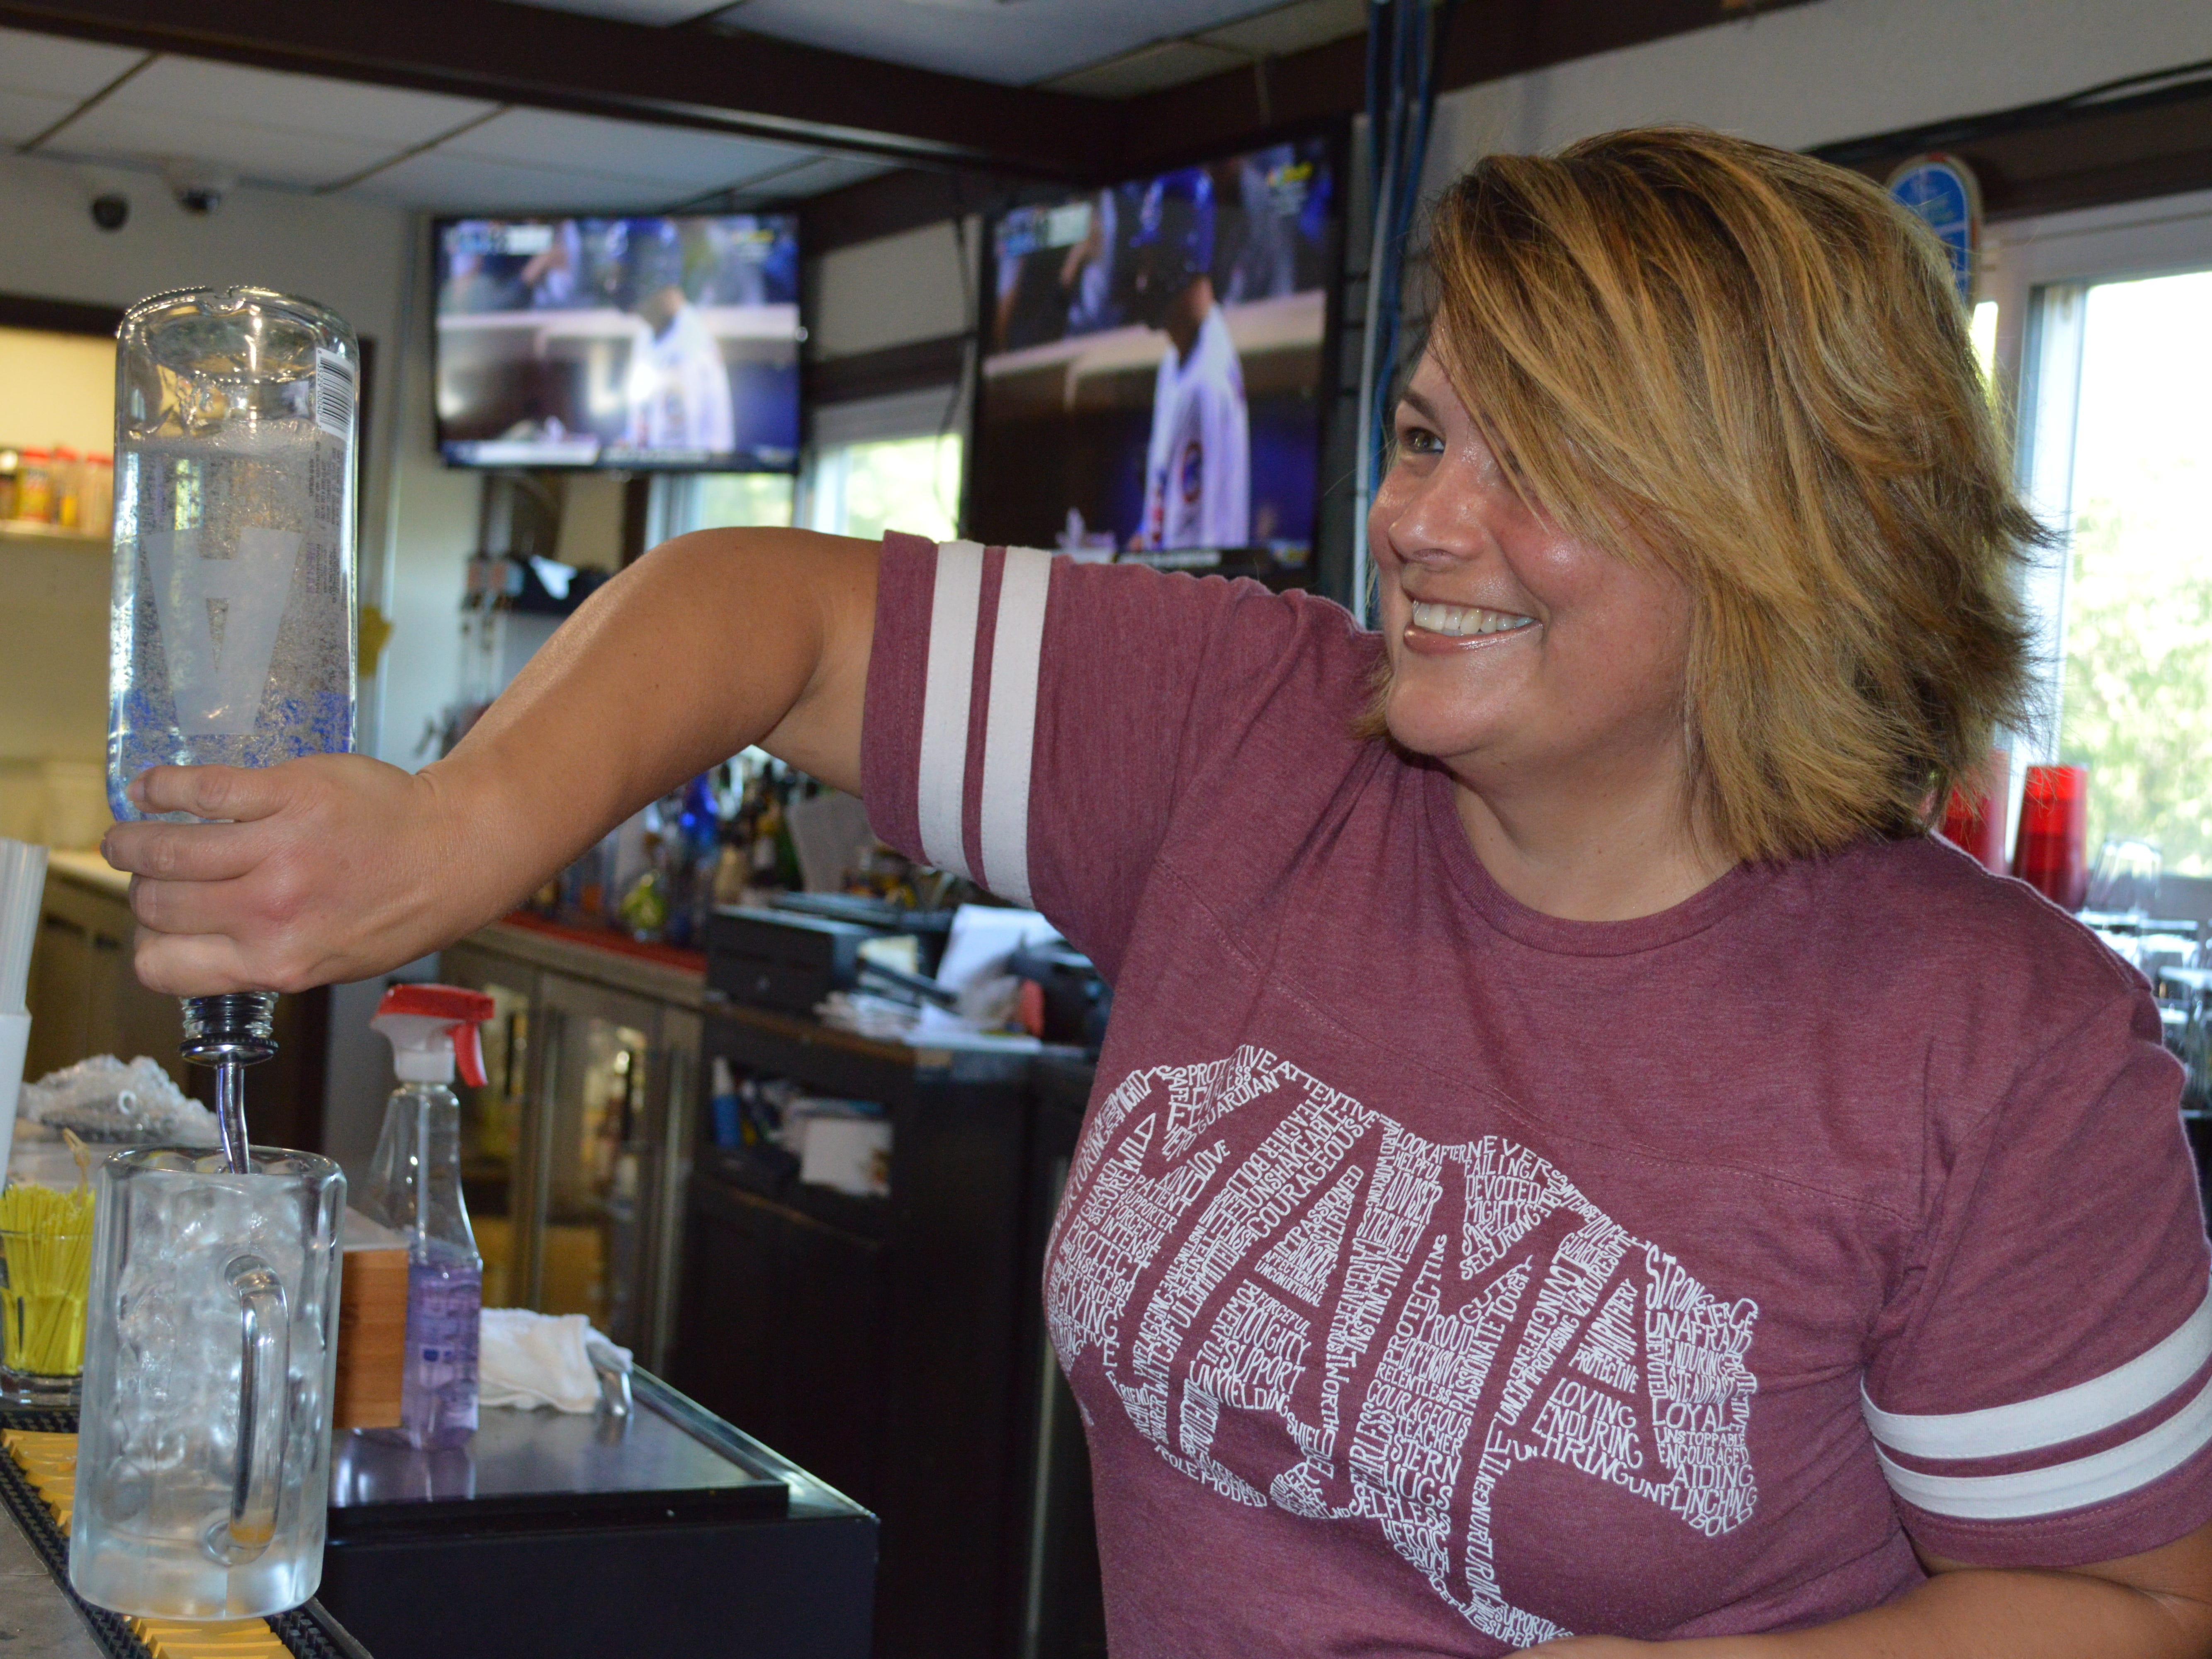 Kimberly Mathy bought Brew Berlin Pub & Grub in July 2017.